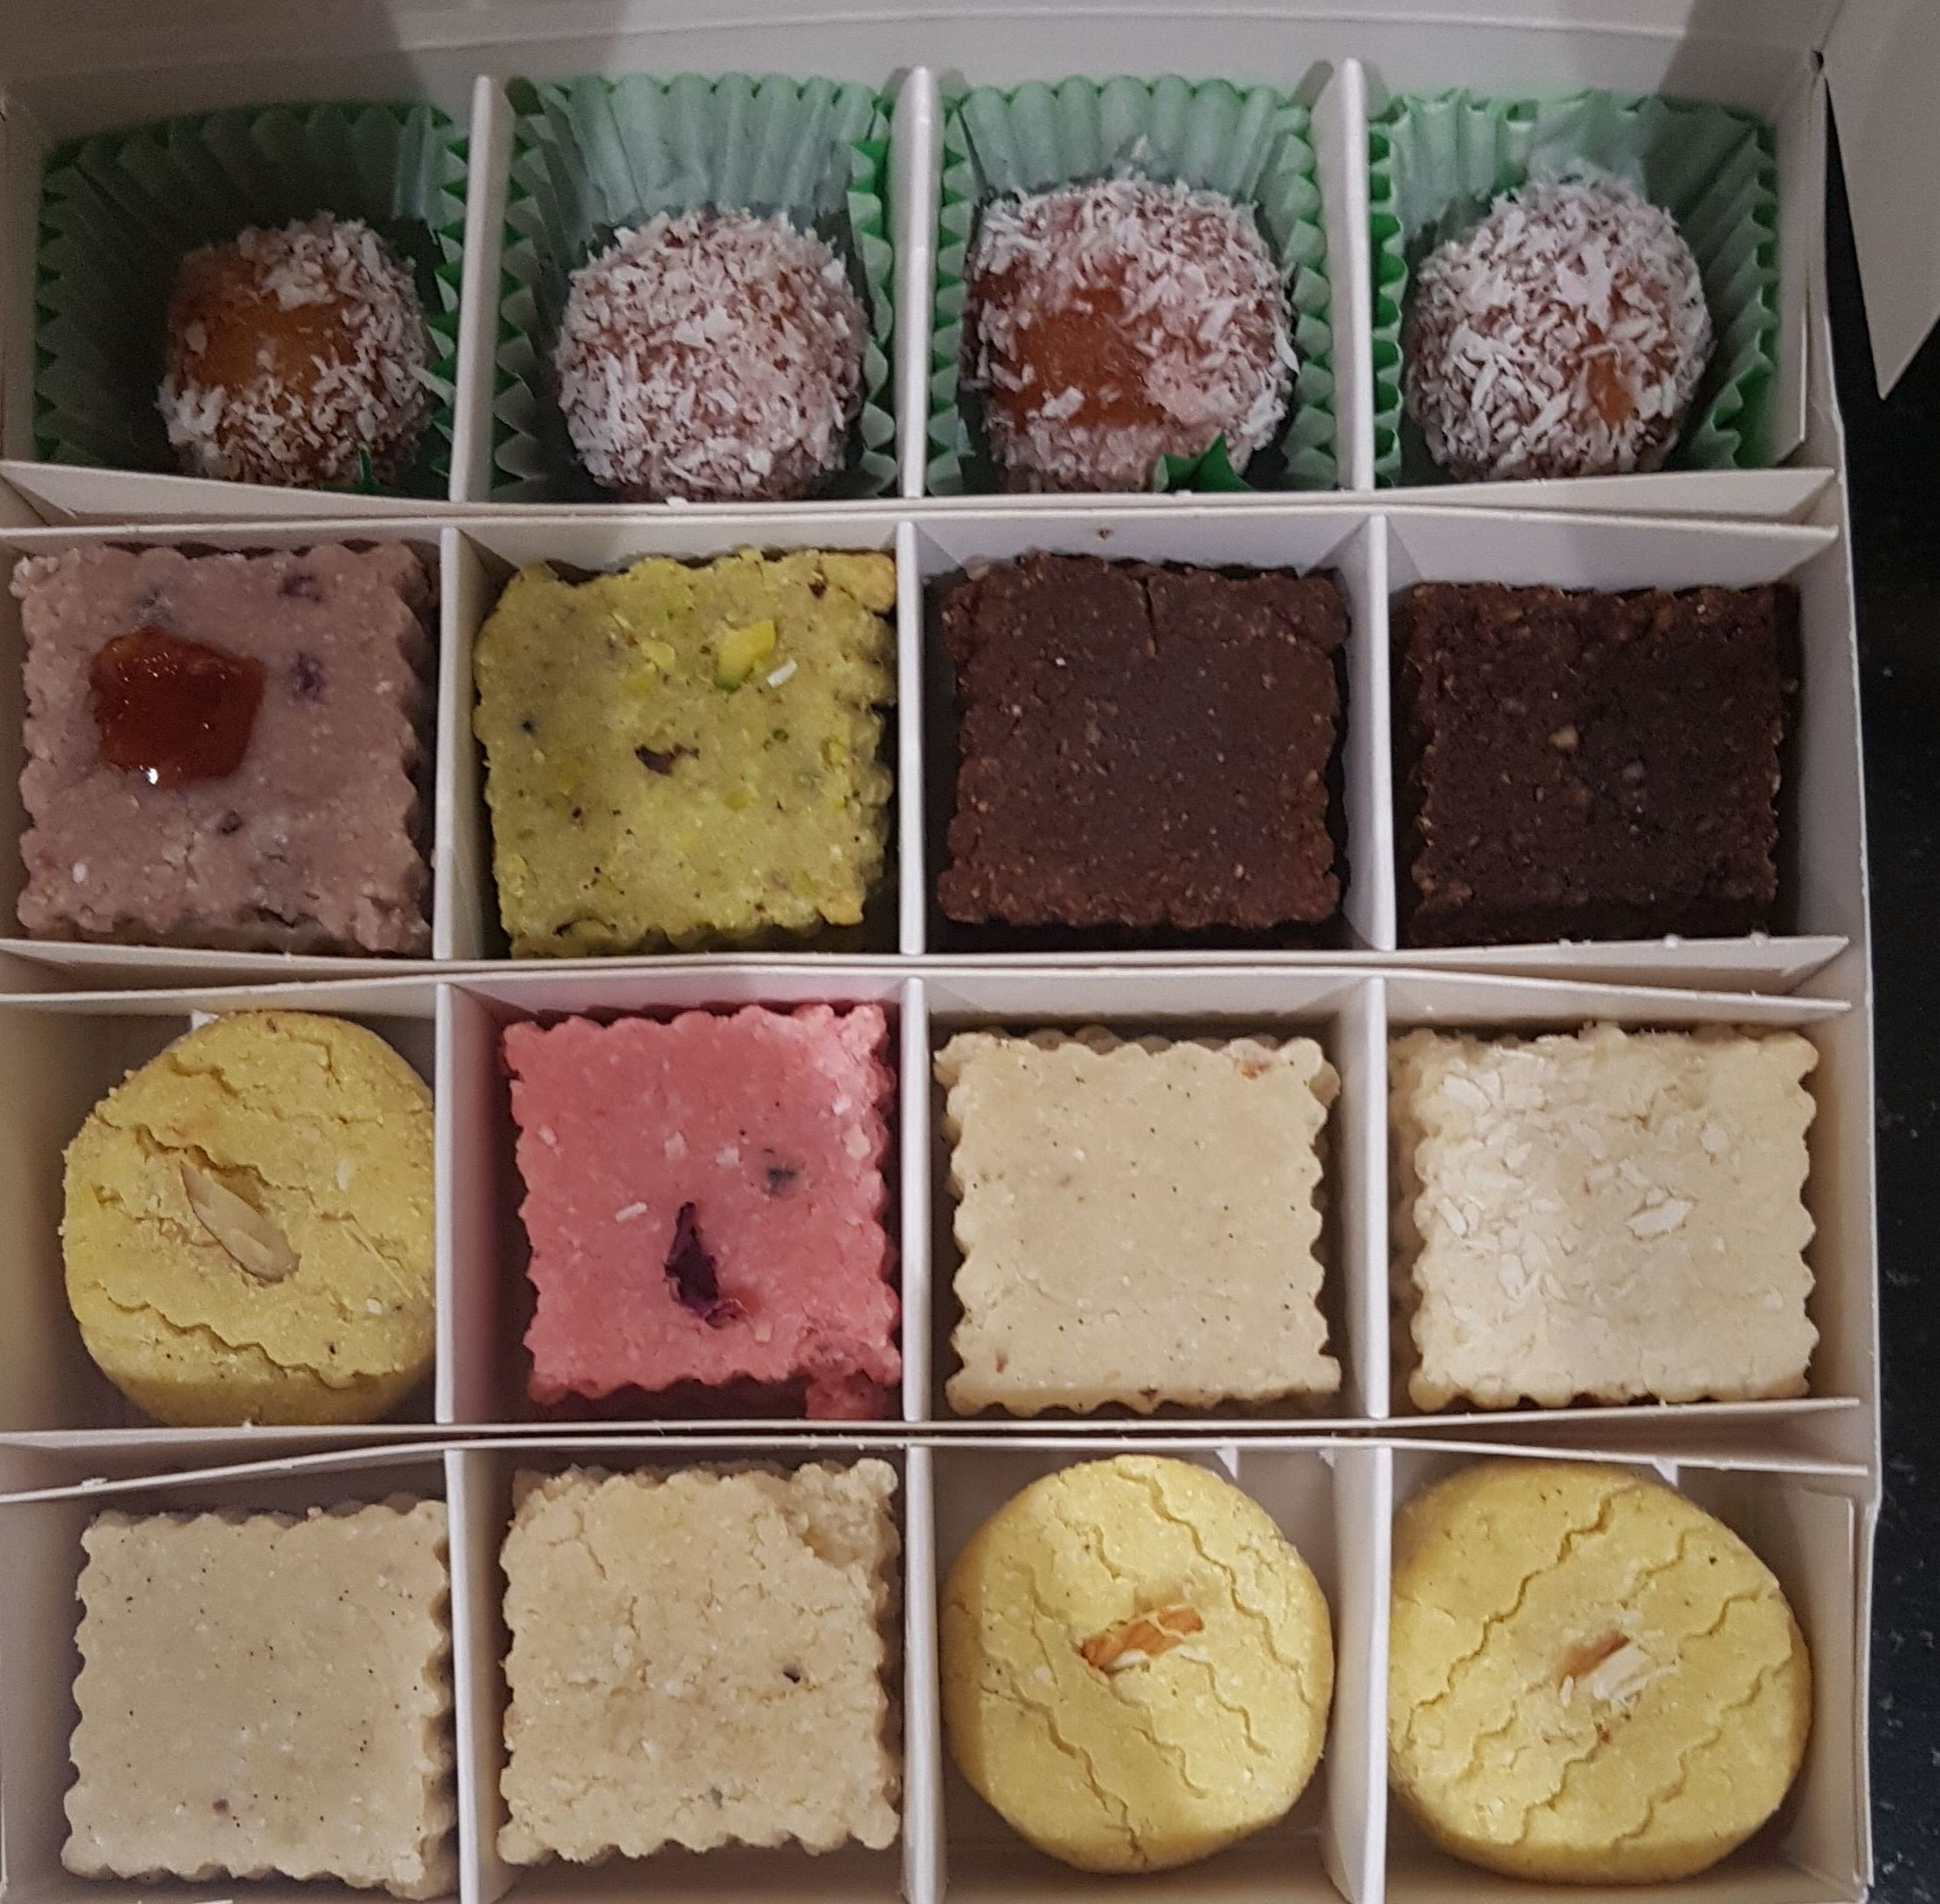 Vegan Mitthai Selection Box from Veganish